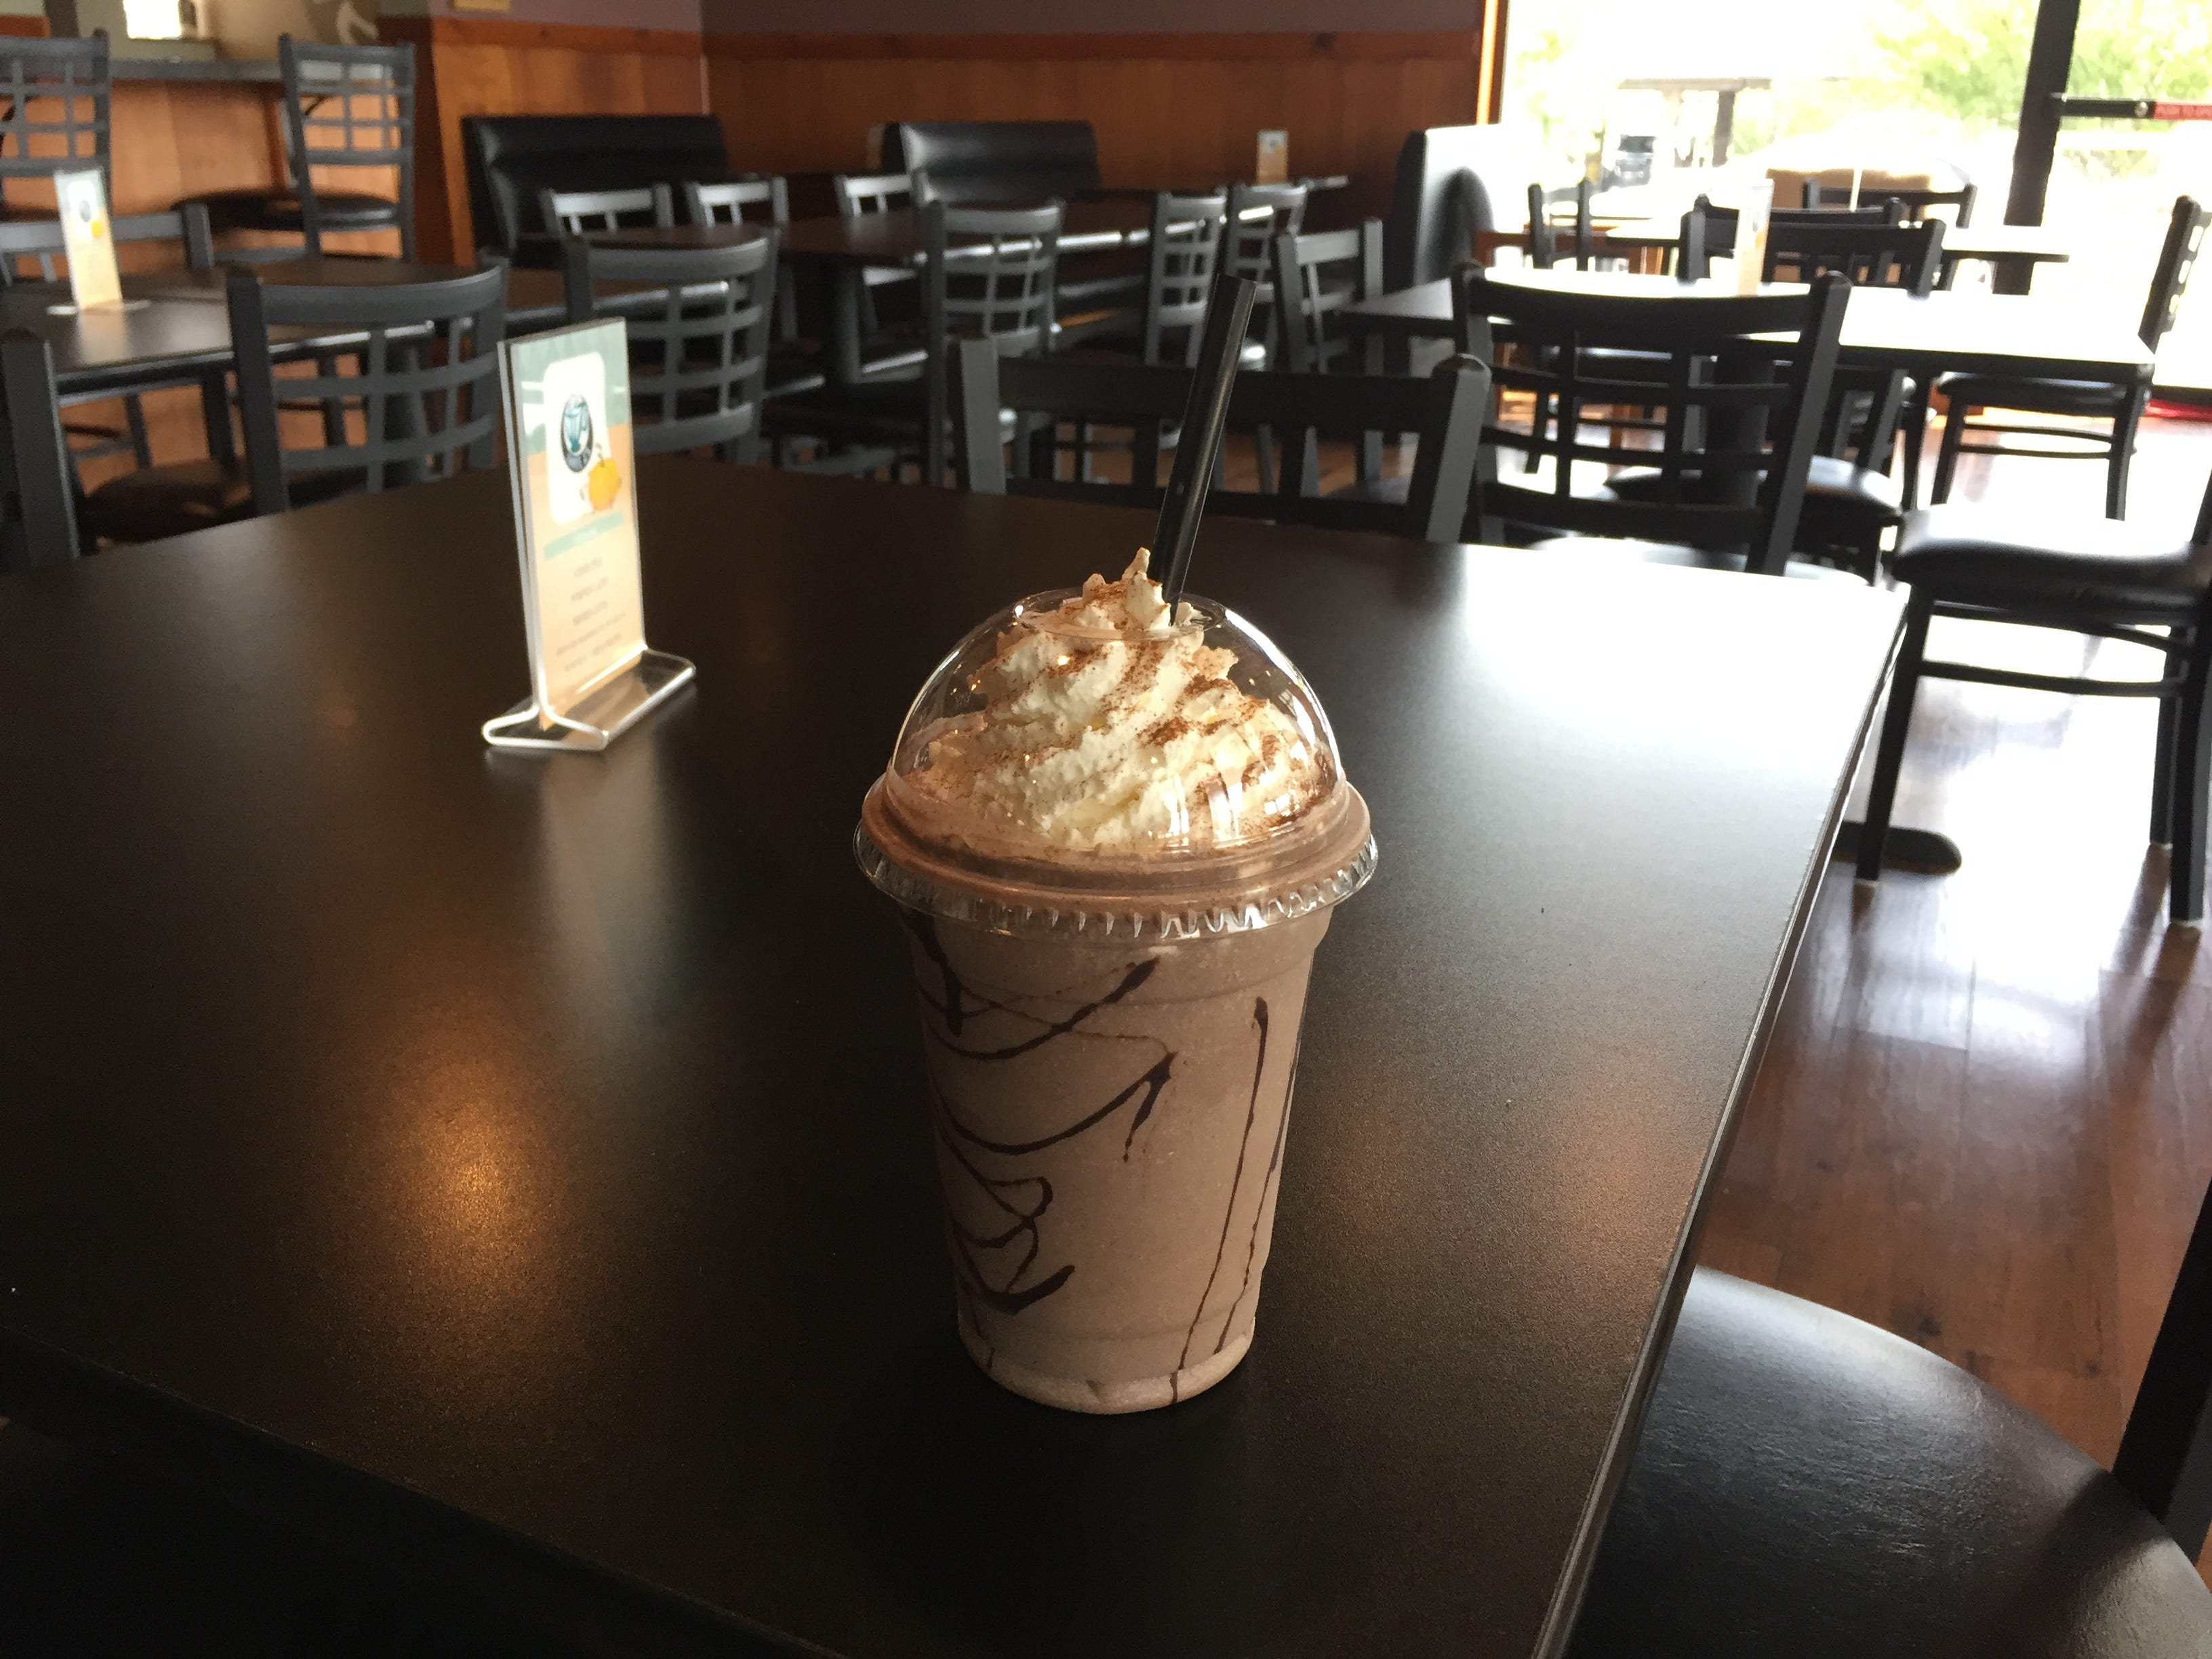 If you have a sweet tooth, you need to try the pumpkin-Oreo frappe (pictured). 3J's also offers a pumpkin cold brew, pumpkin latte, s'mores latte and cider chai at its large coffeehouse.